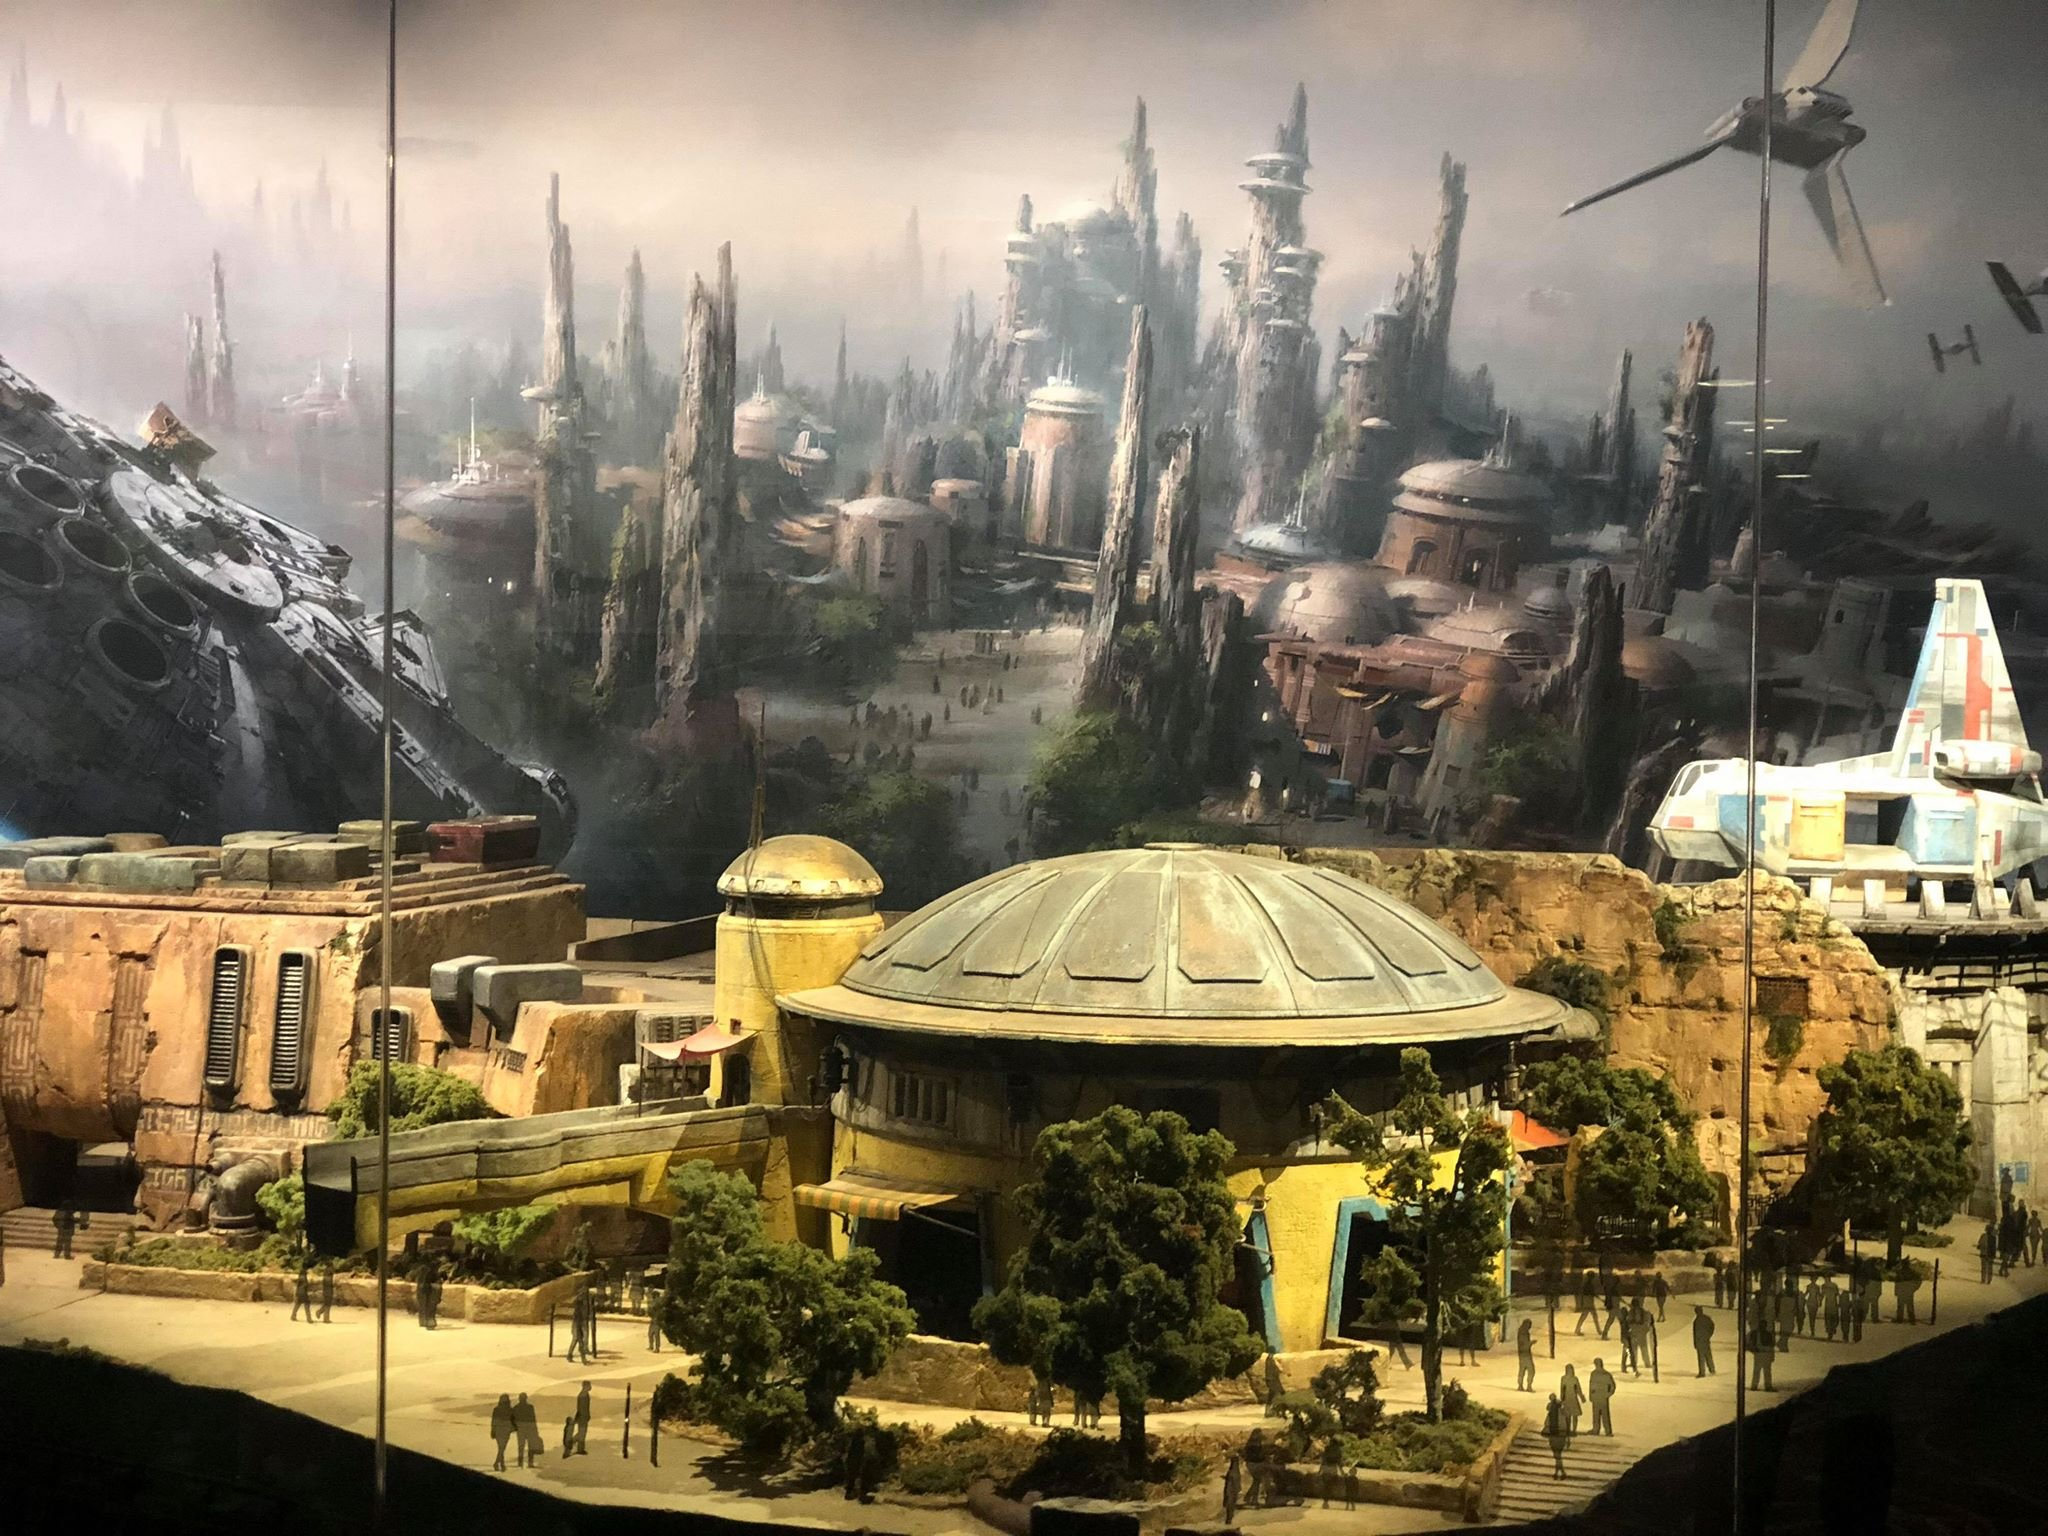 The model of Star Wars Land